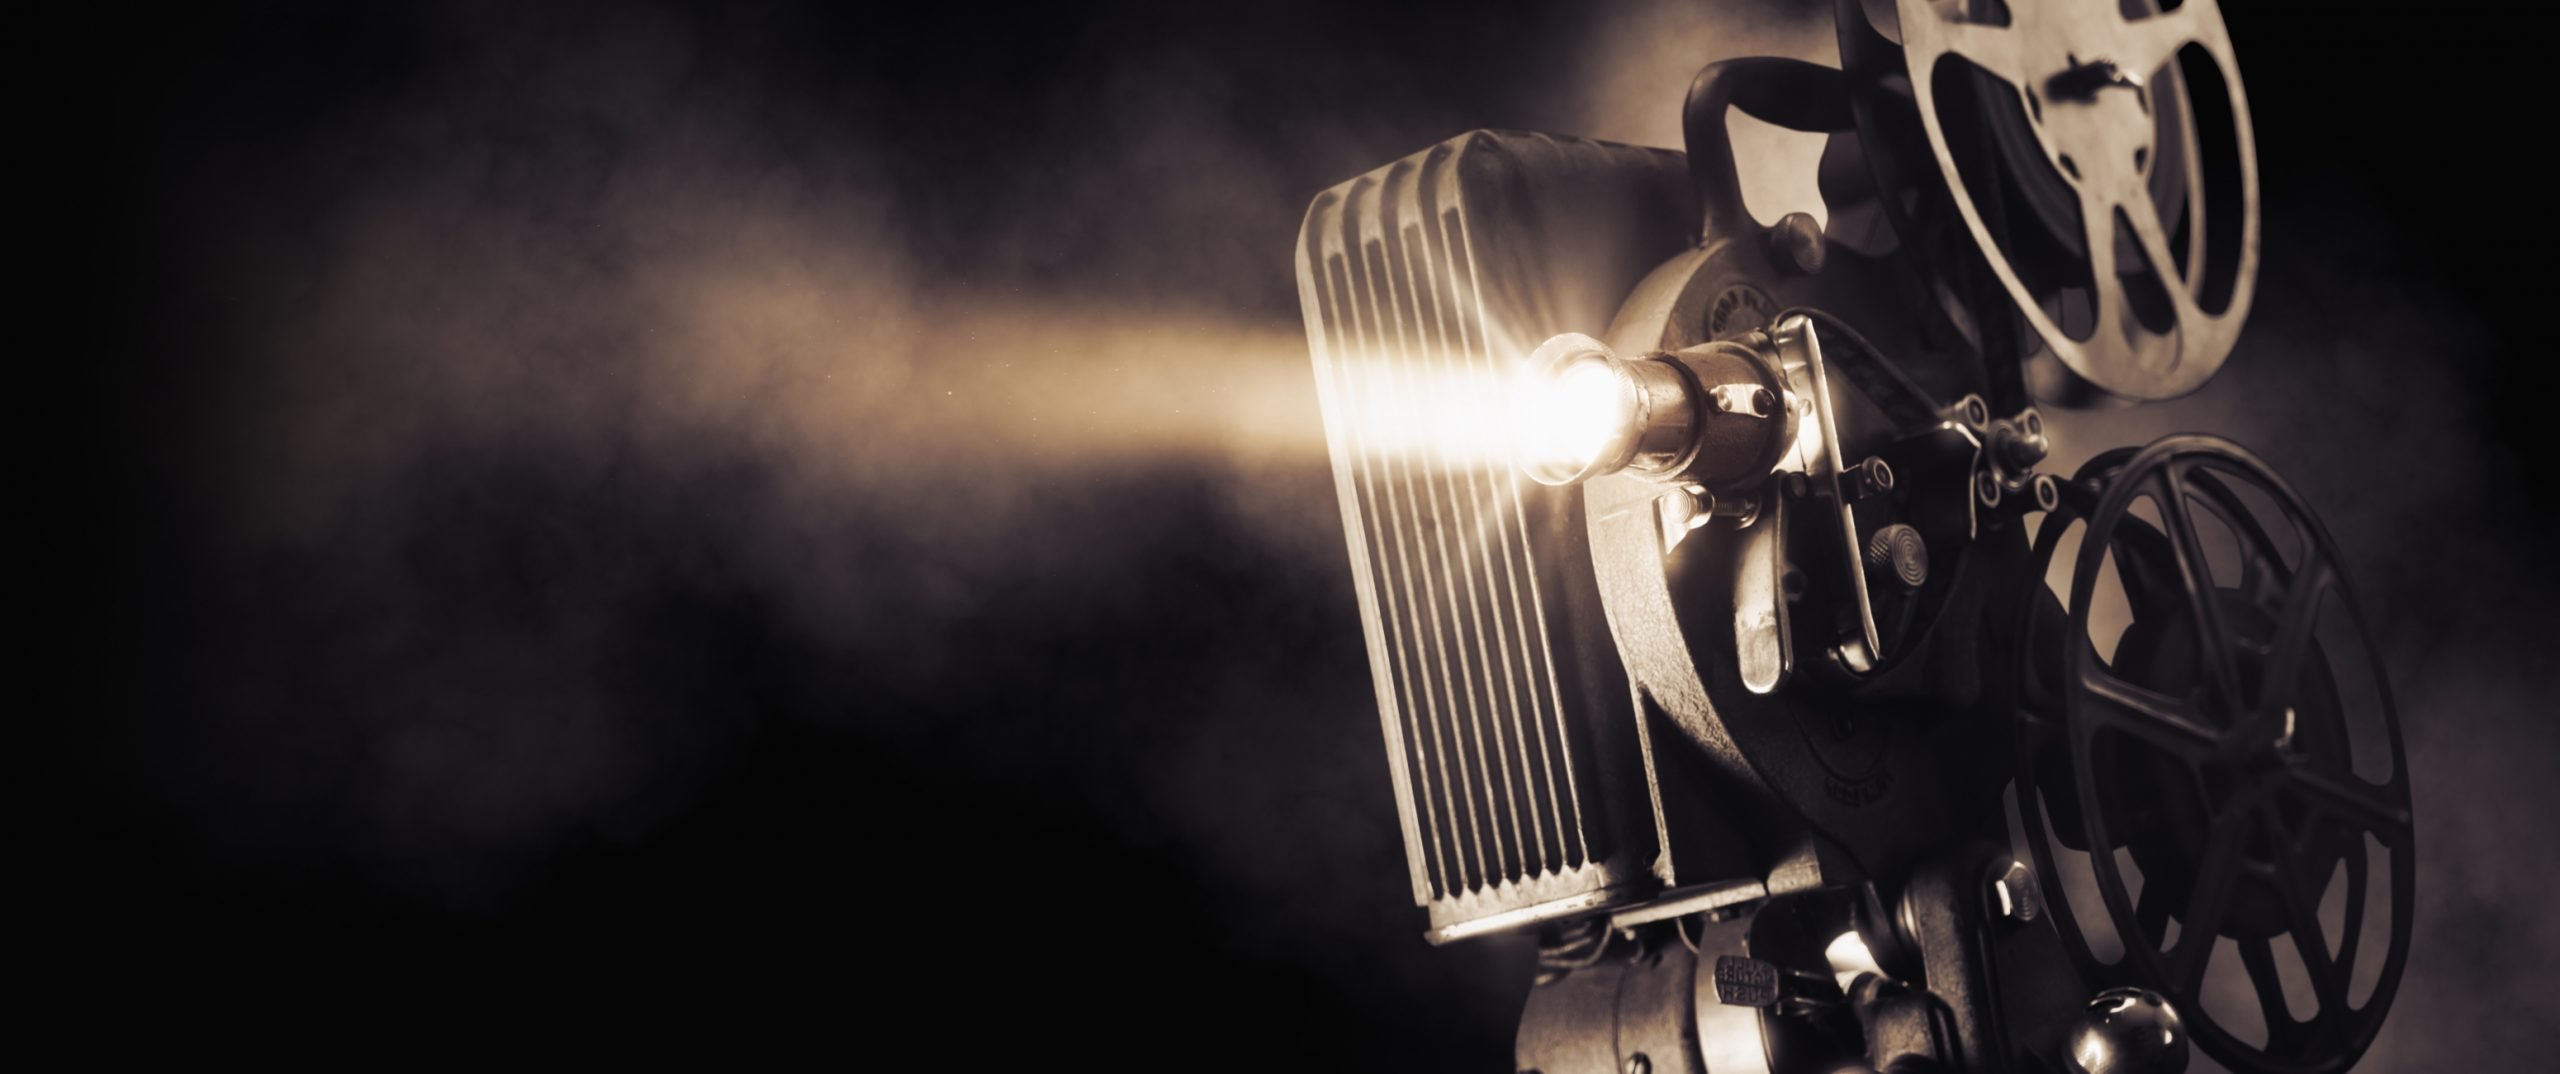 Movie projector on a dark background with light beam